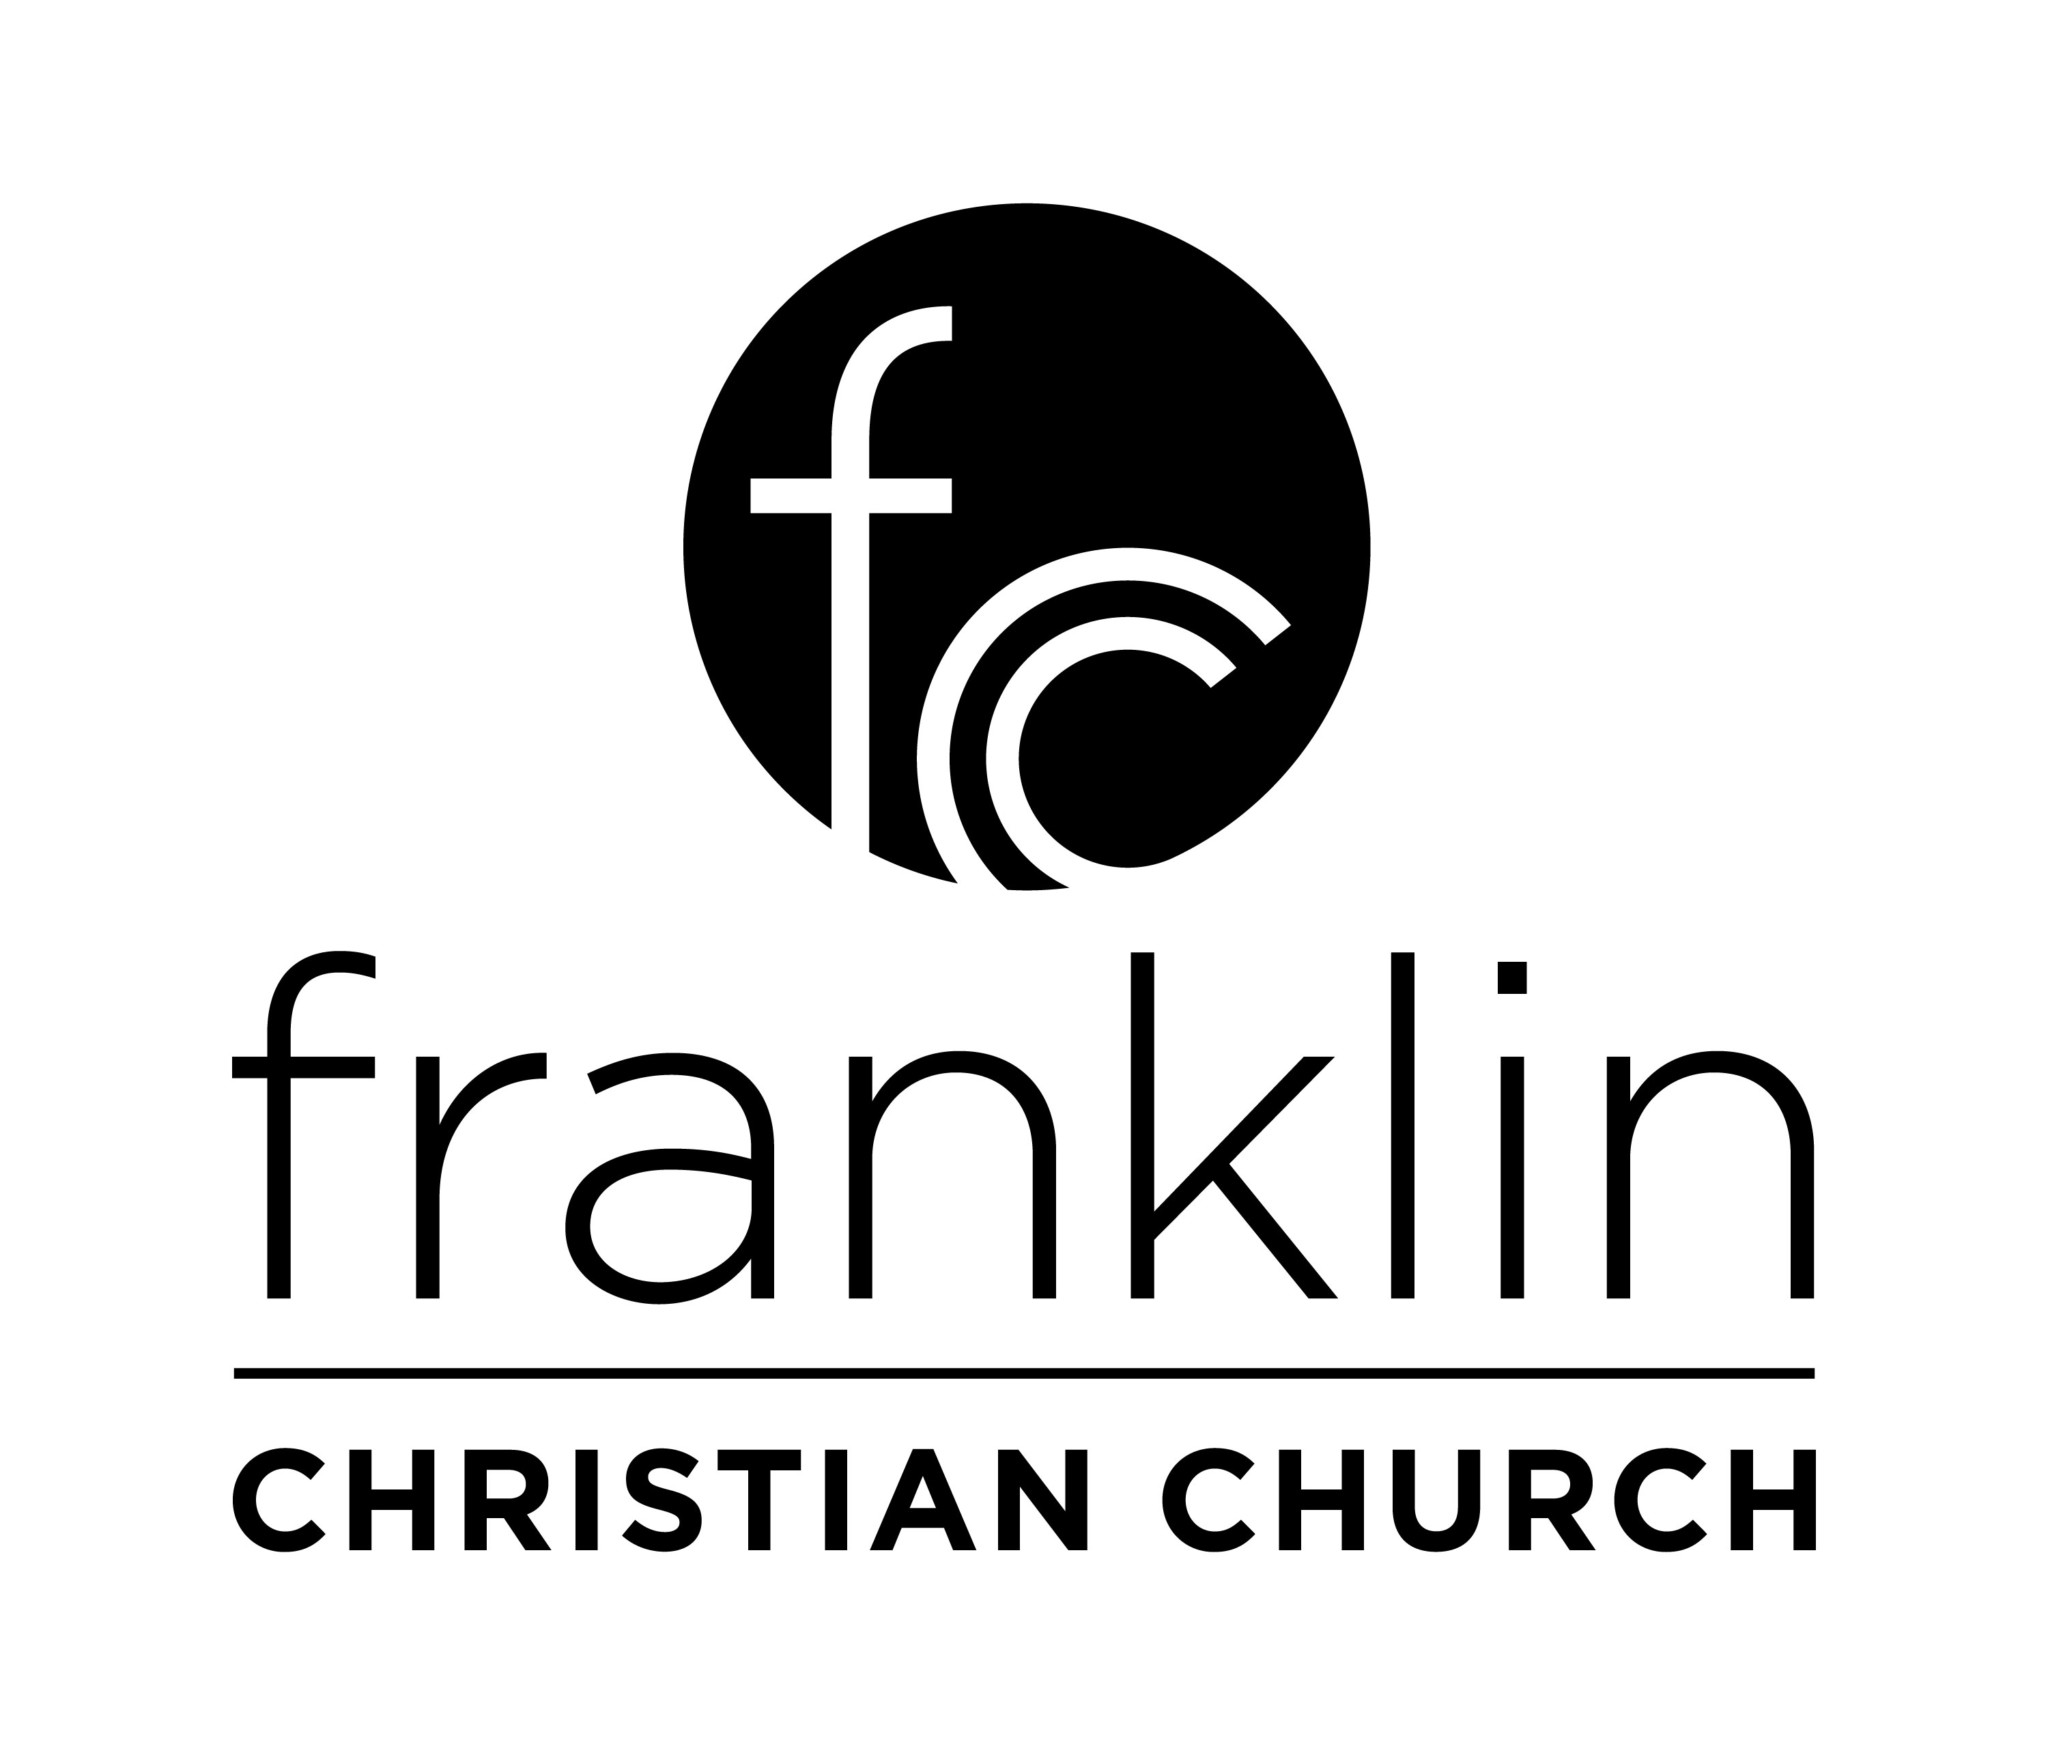 Franklin Christian Church